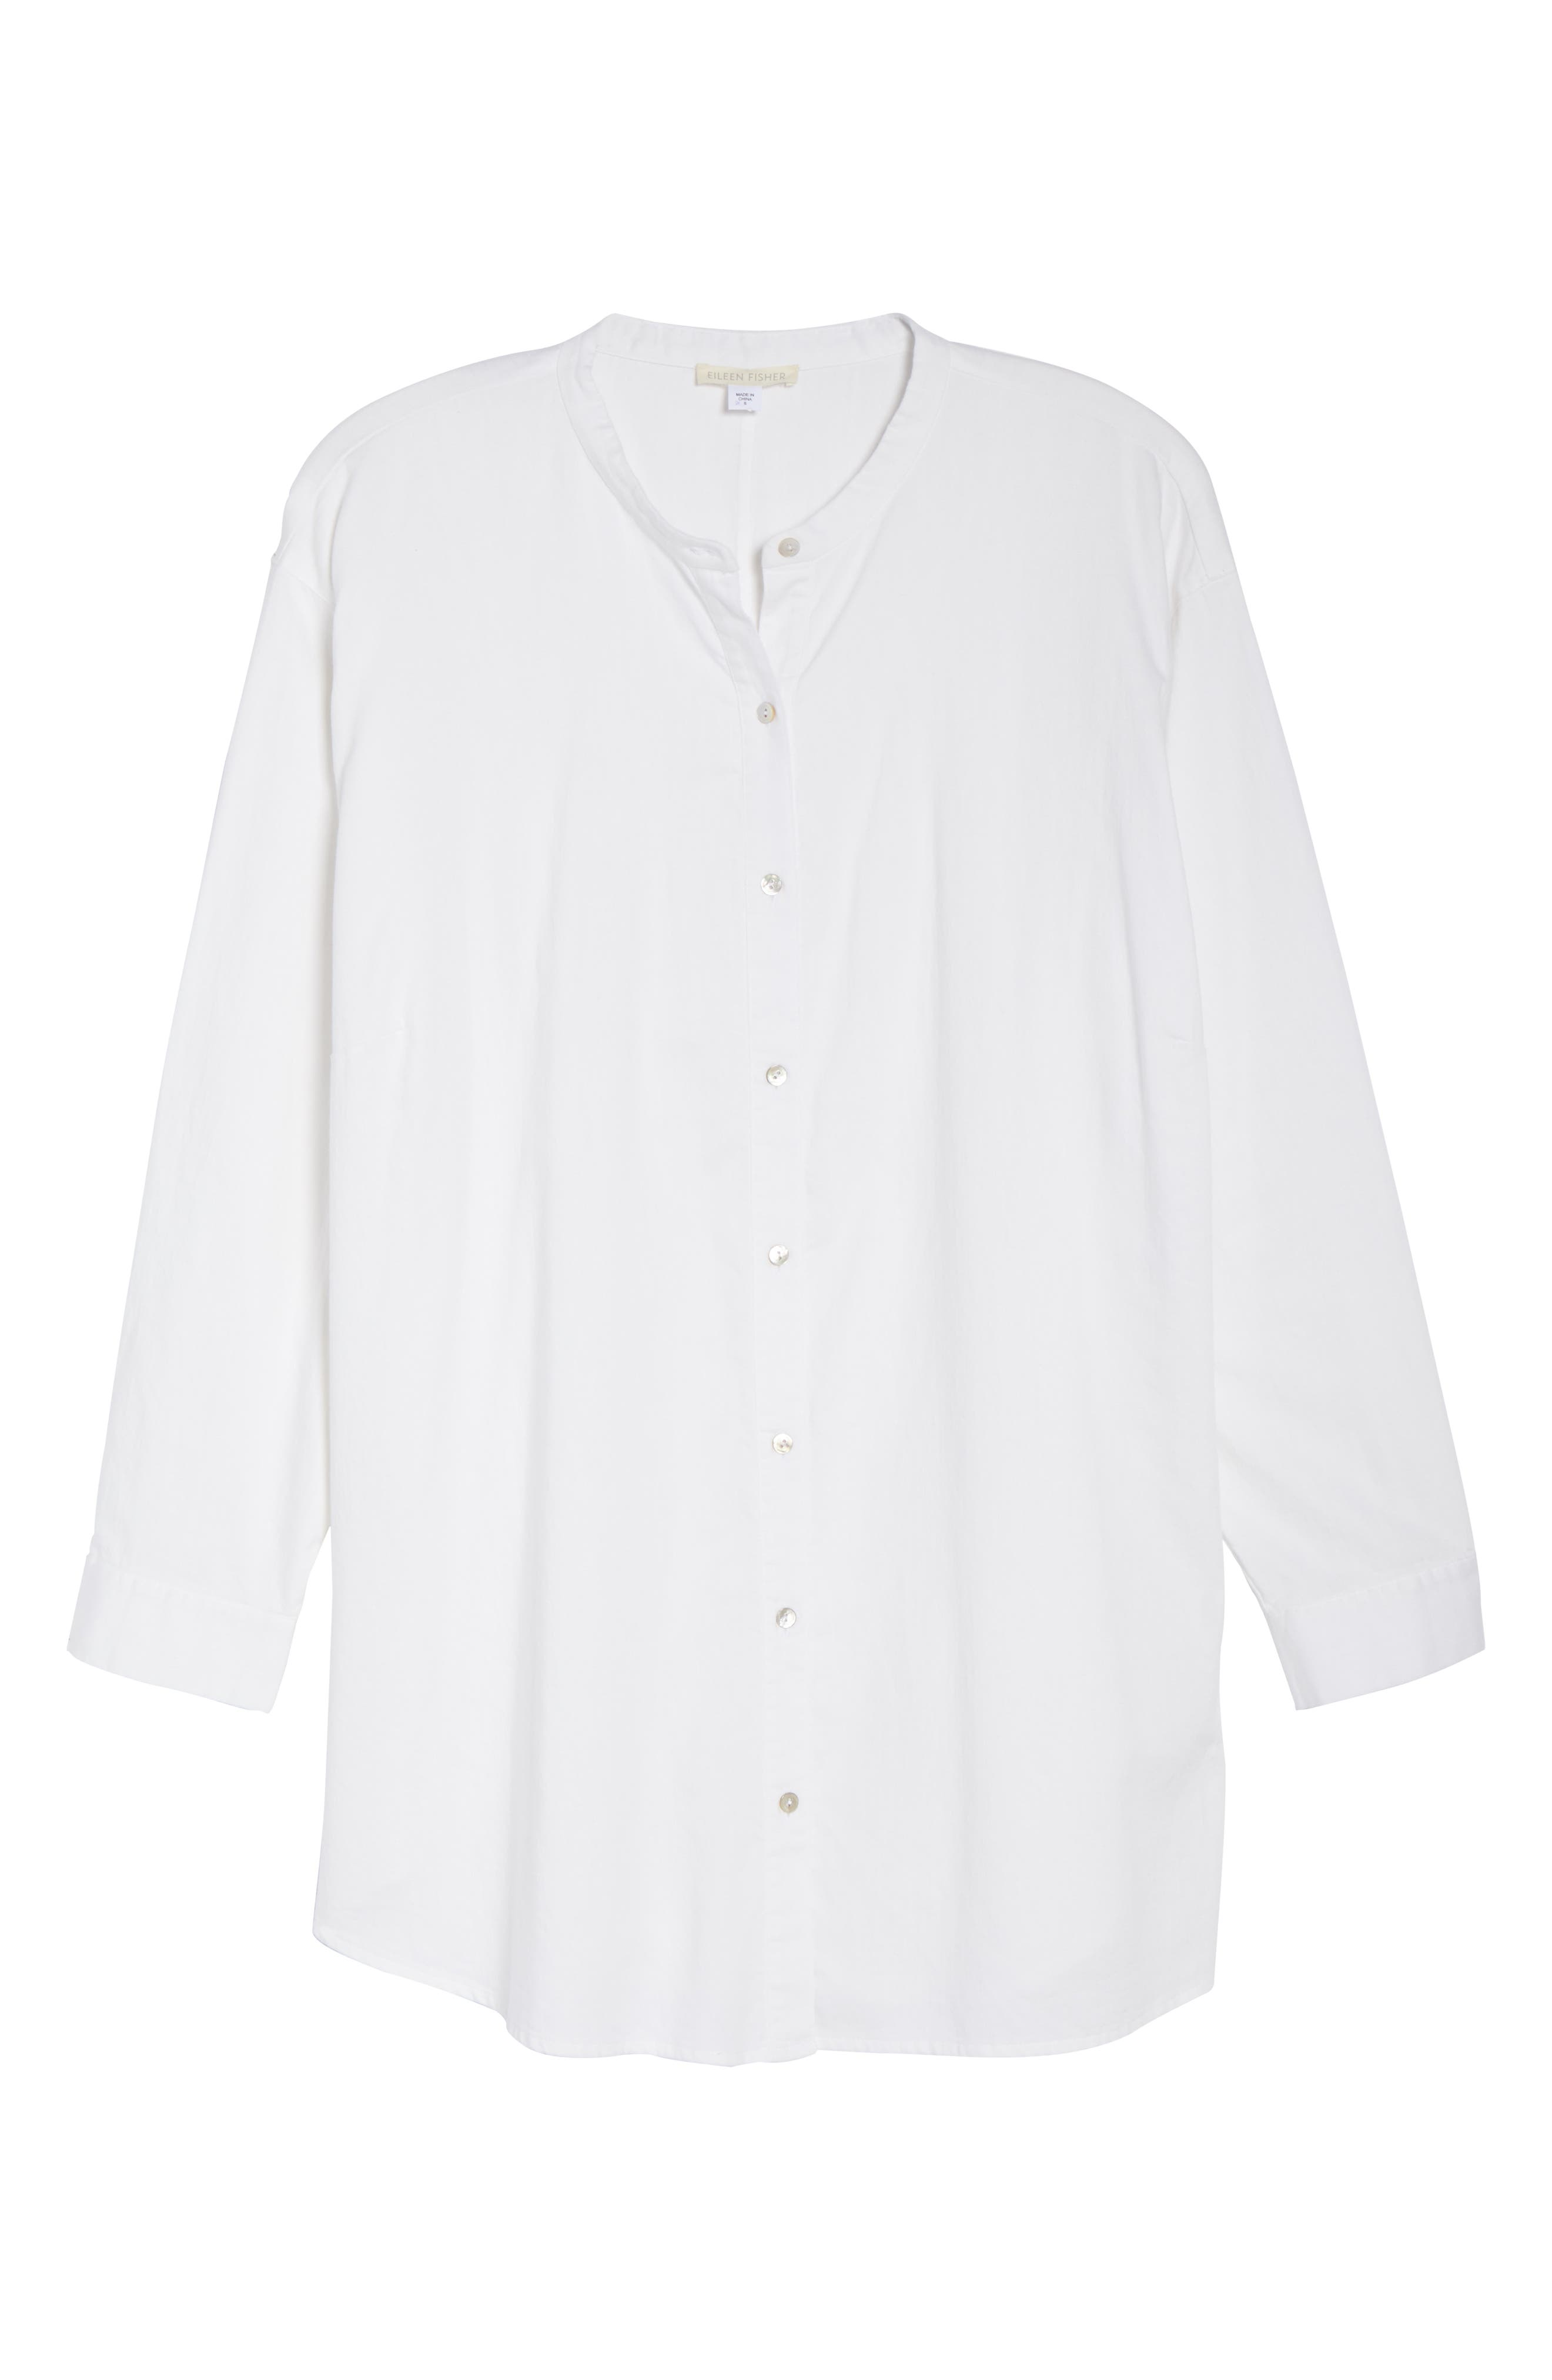 EILEEN FISHER,                             Mandarin Collar Organic Cotton Tunic Shirt,                             Alternate thumbnail 6, color,                             IVORY